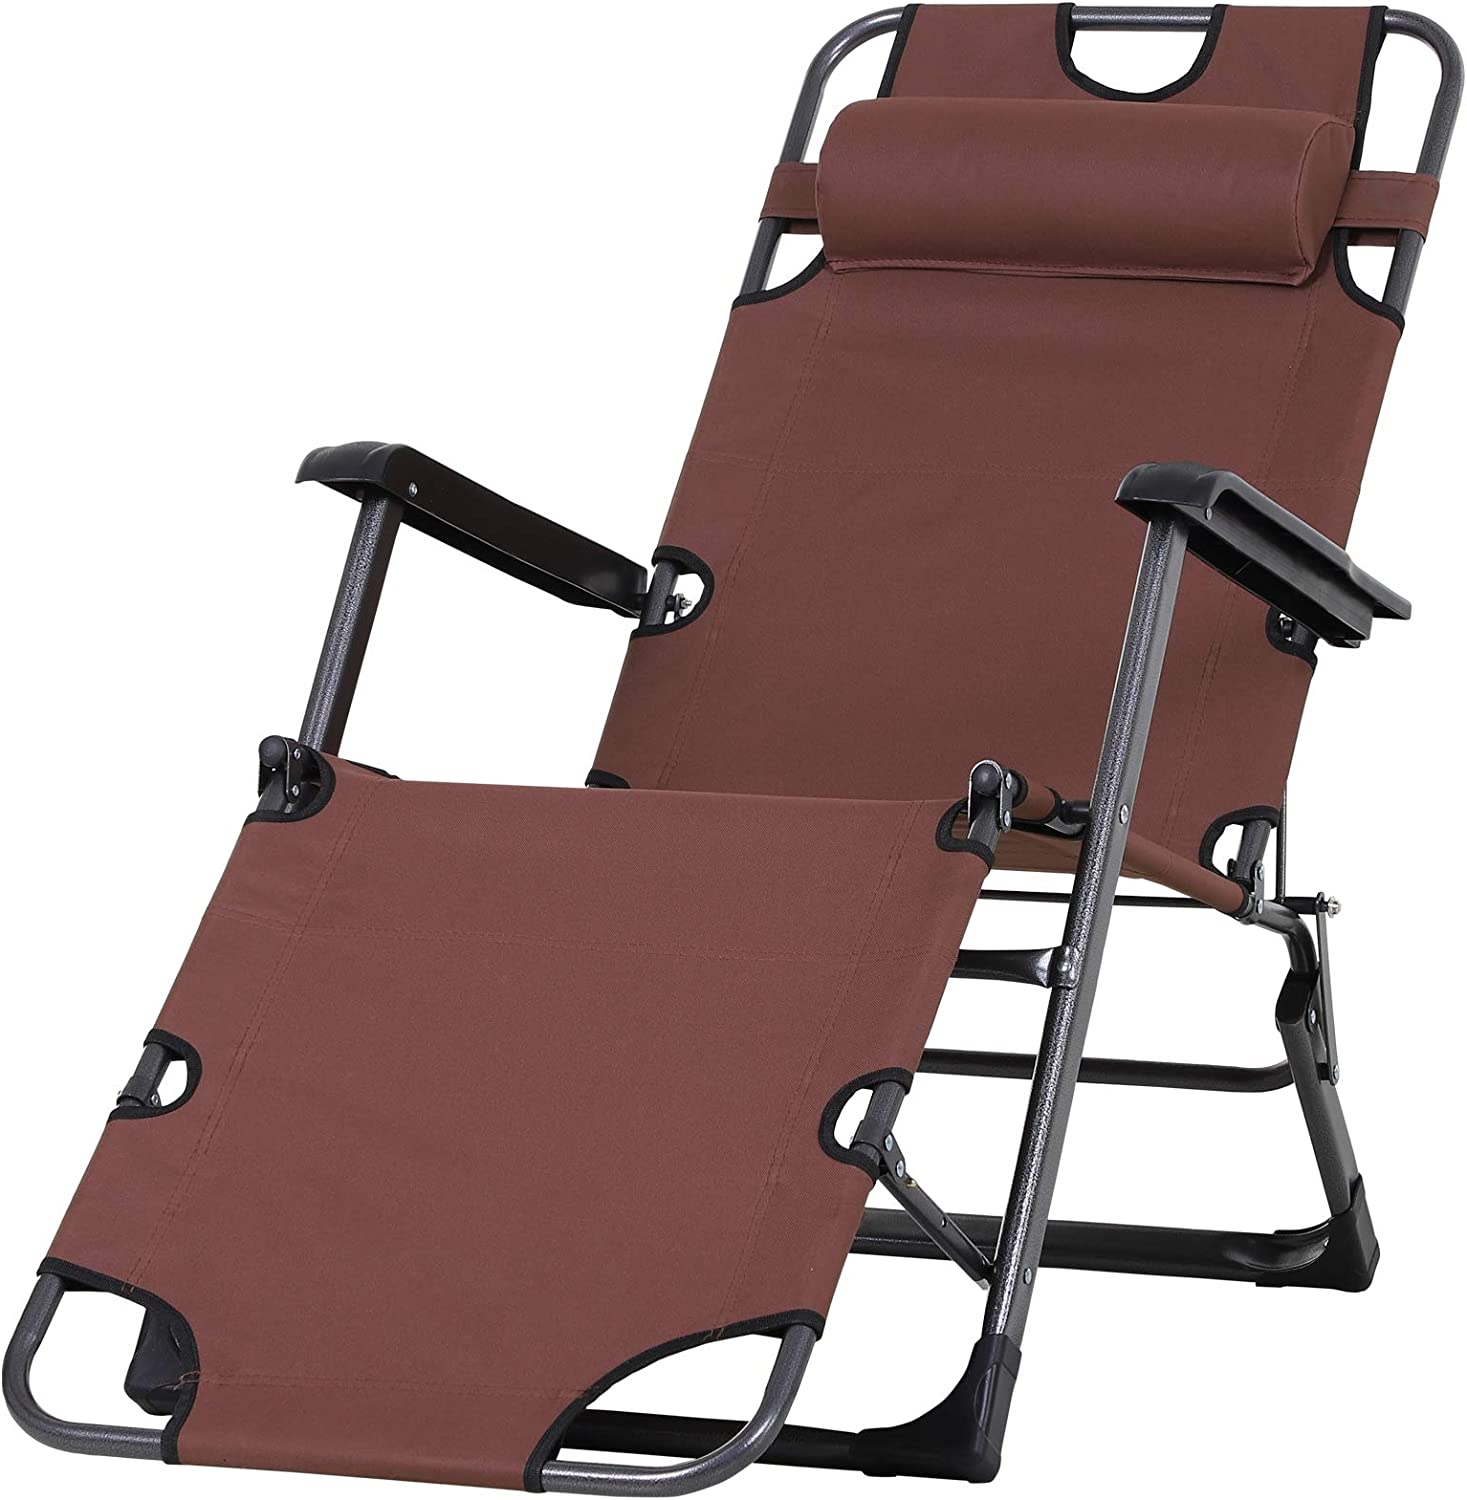 Outsunny New life Outdoor Folding Reclining Lounge Chairs Beach Same day shipping Oxf Patio